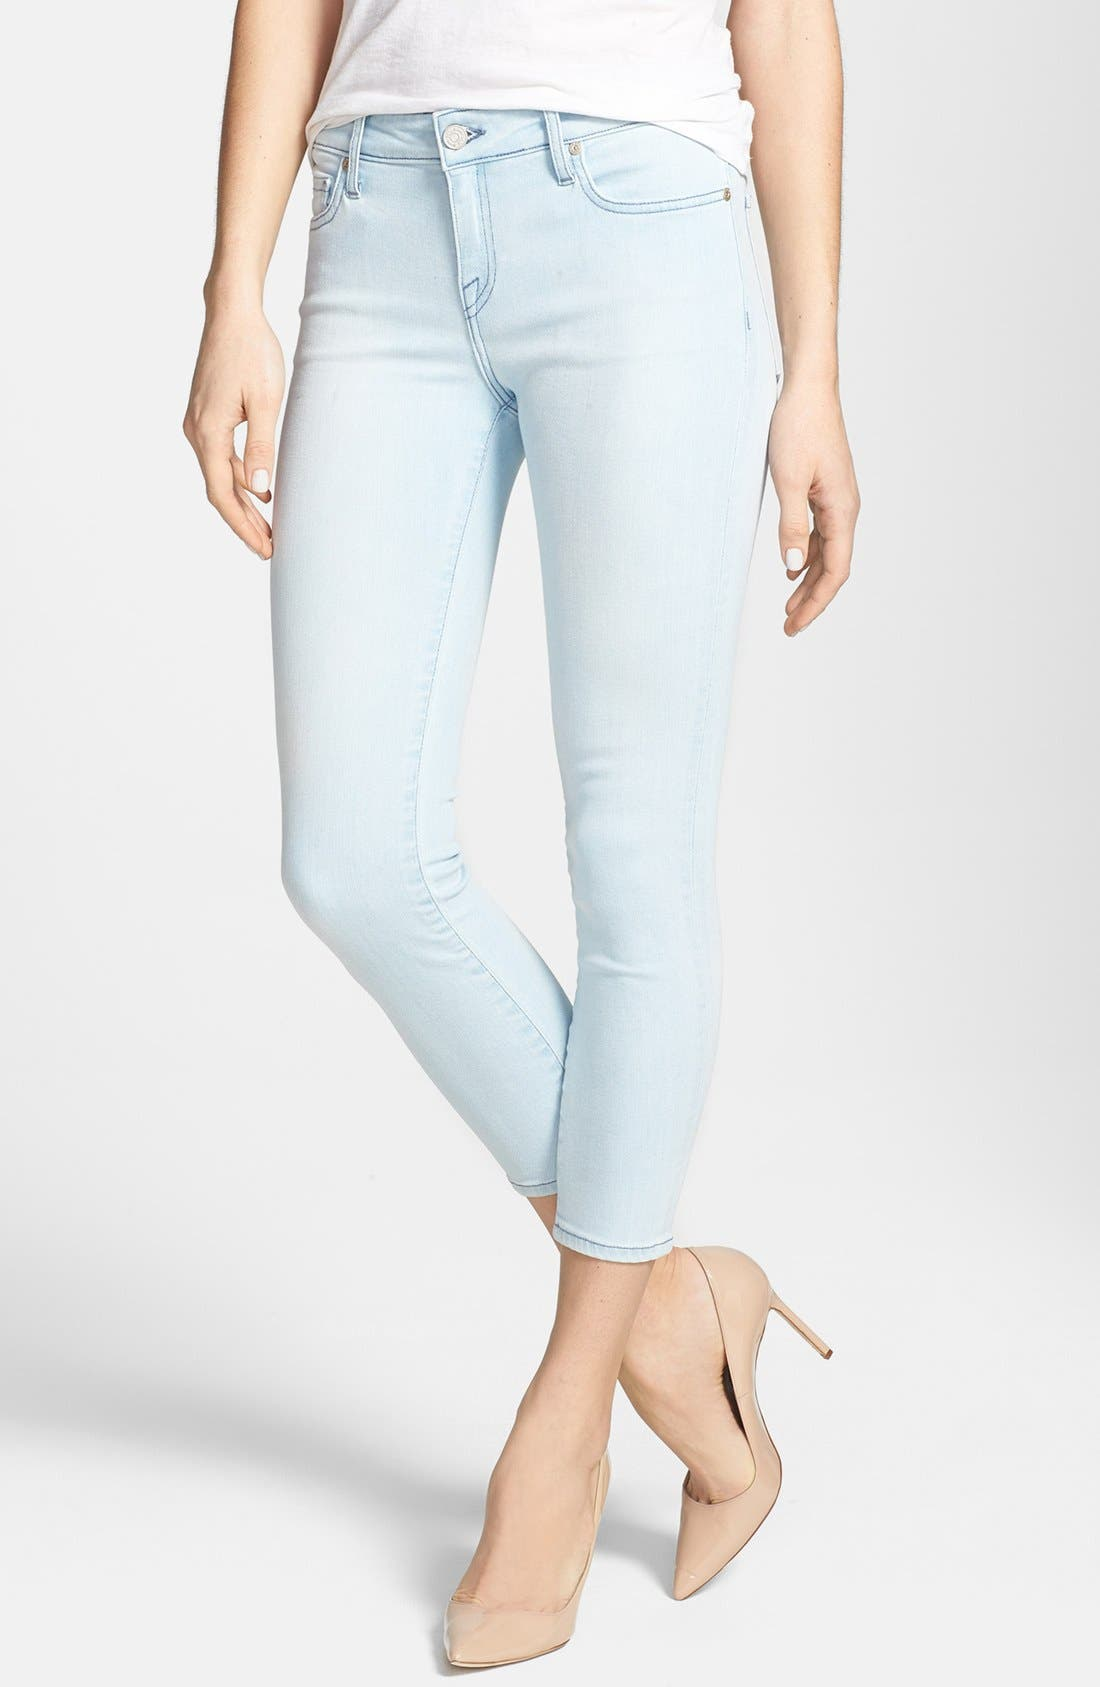 Alternate Image 1 Selected - Joie Colored Crop Stretch Skinny Jeans (Starlight)